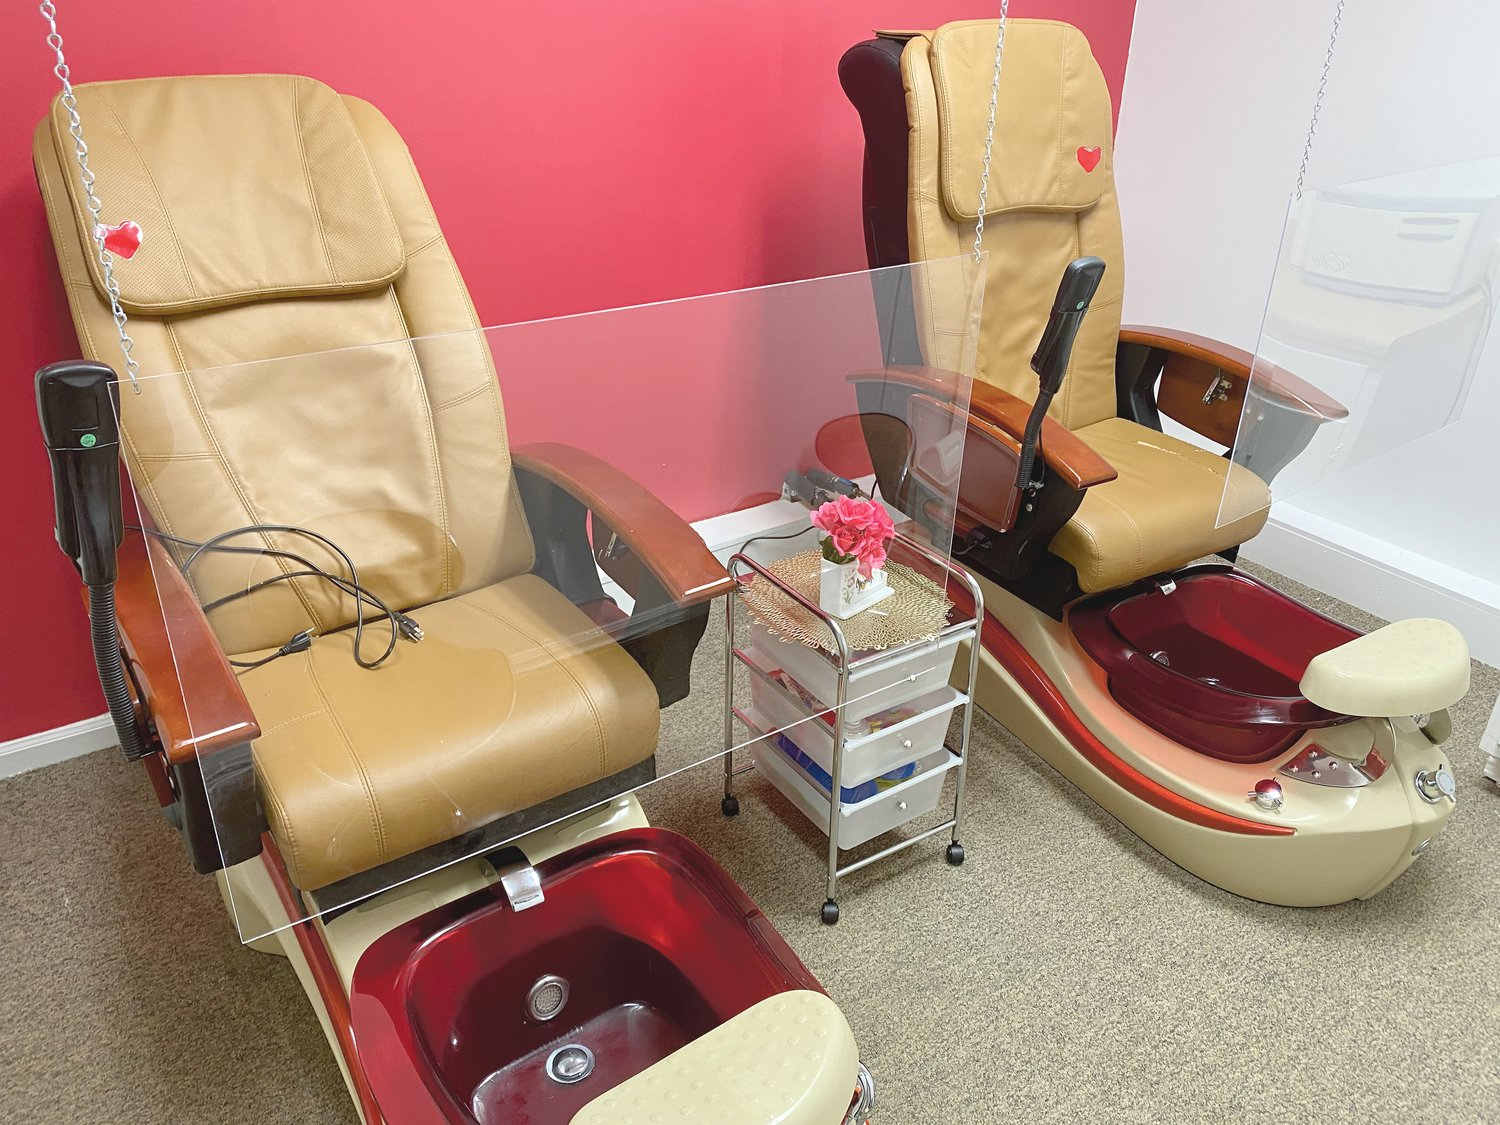 The pedicure room is ready for clients at Yosmy's Nail Salon.